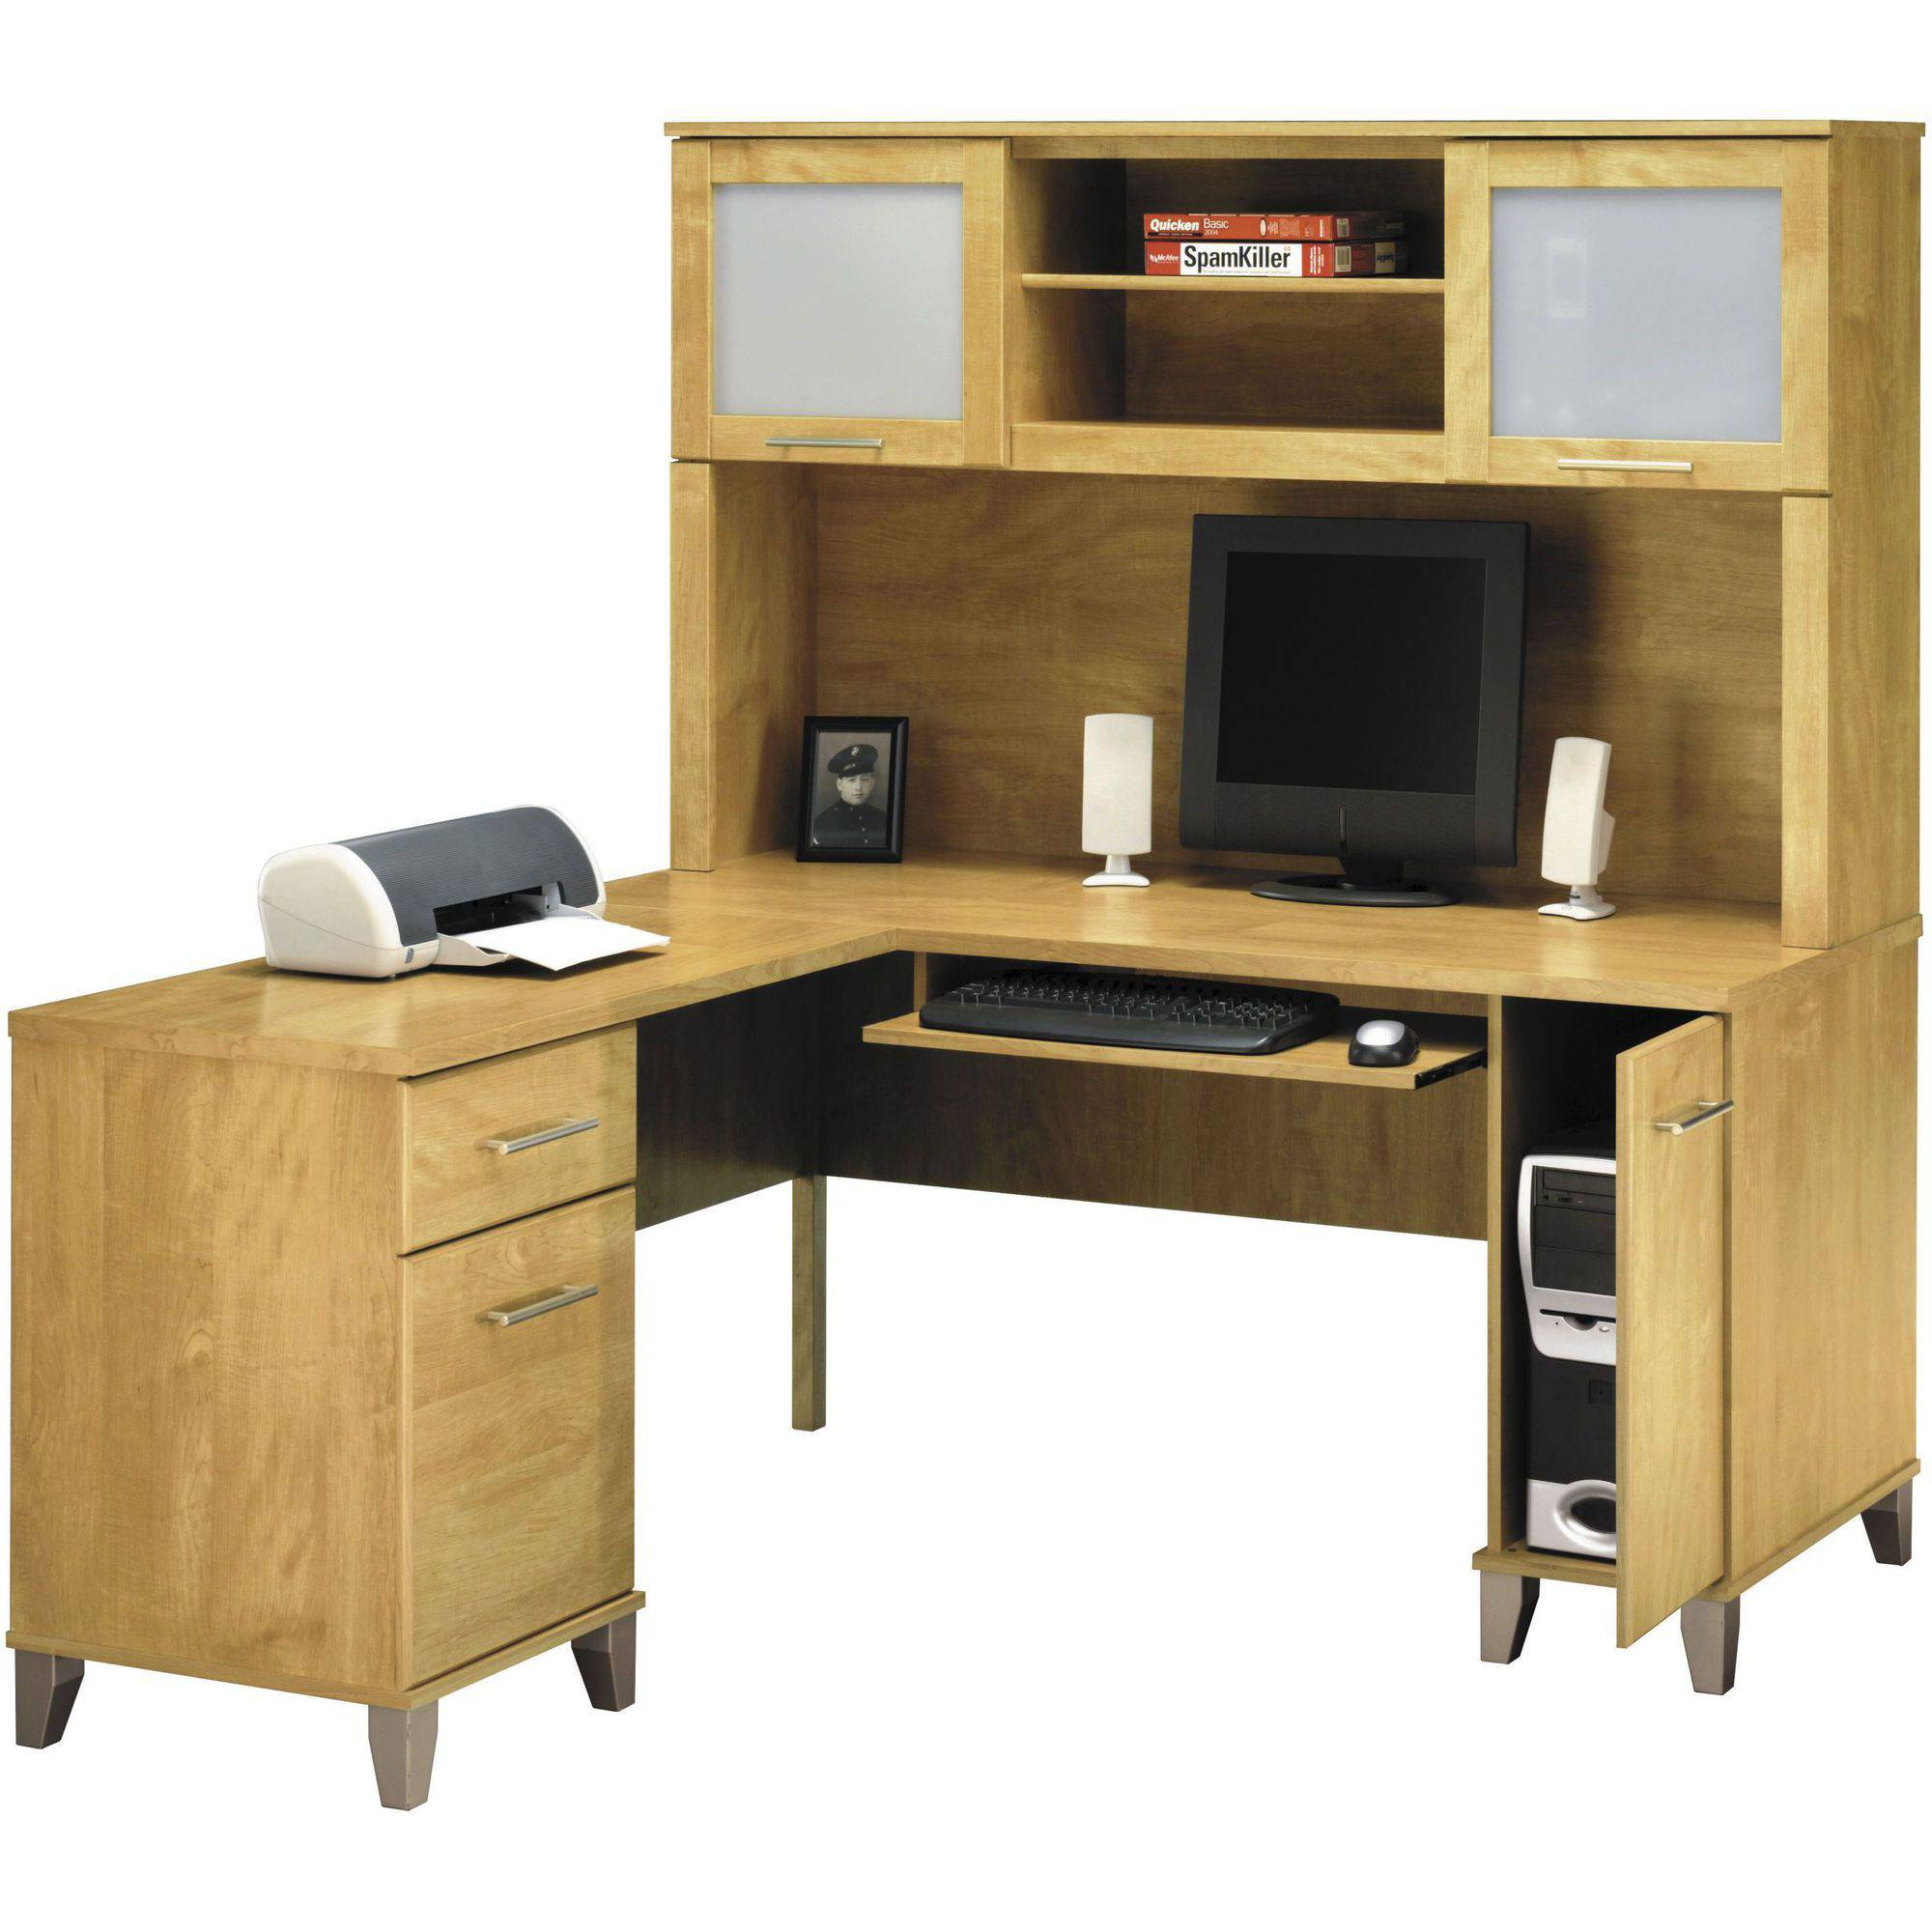 l shaped computer desk bush somerset 60 aoqvkkd